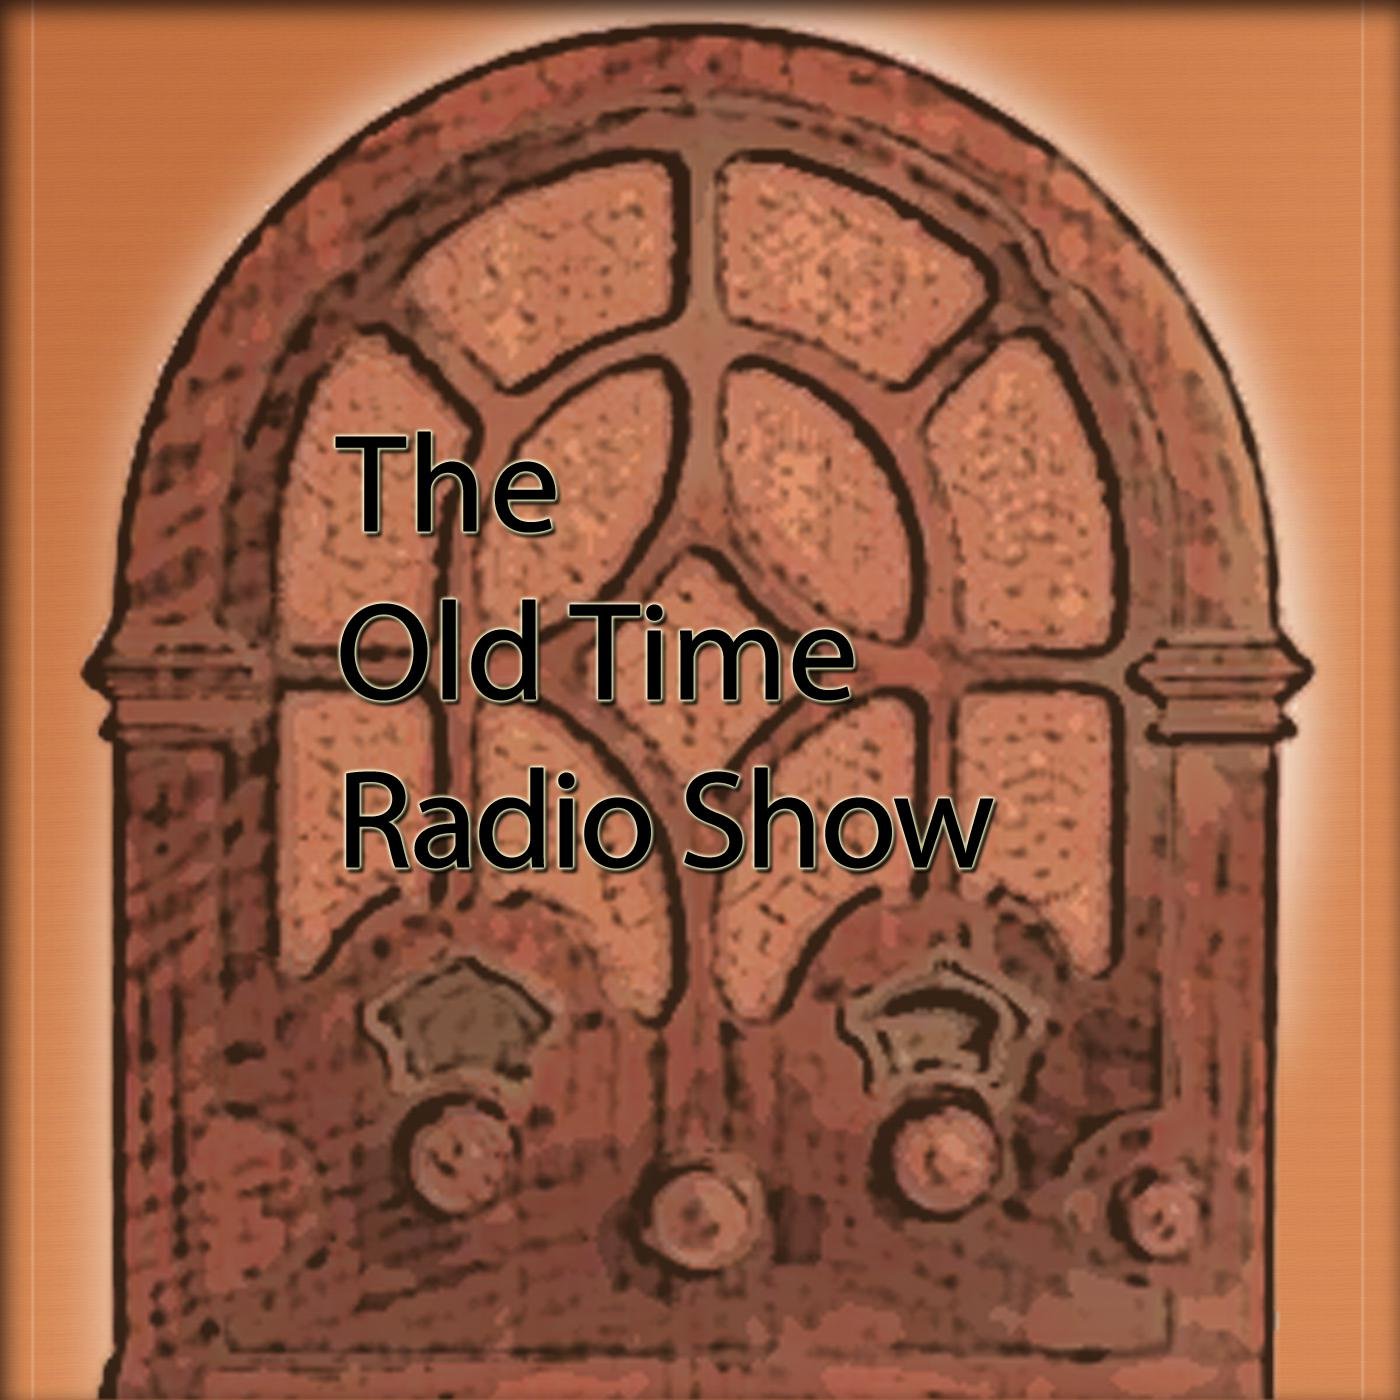 The Old Time Radio Show (podcast) - Bobb Lynes | Listen Notes